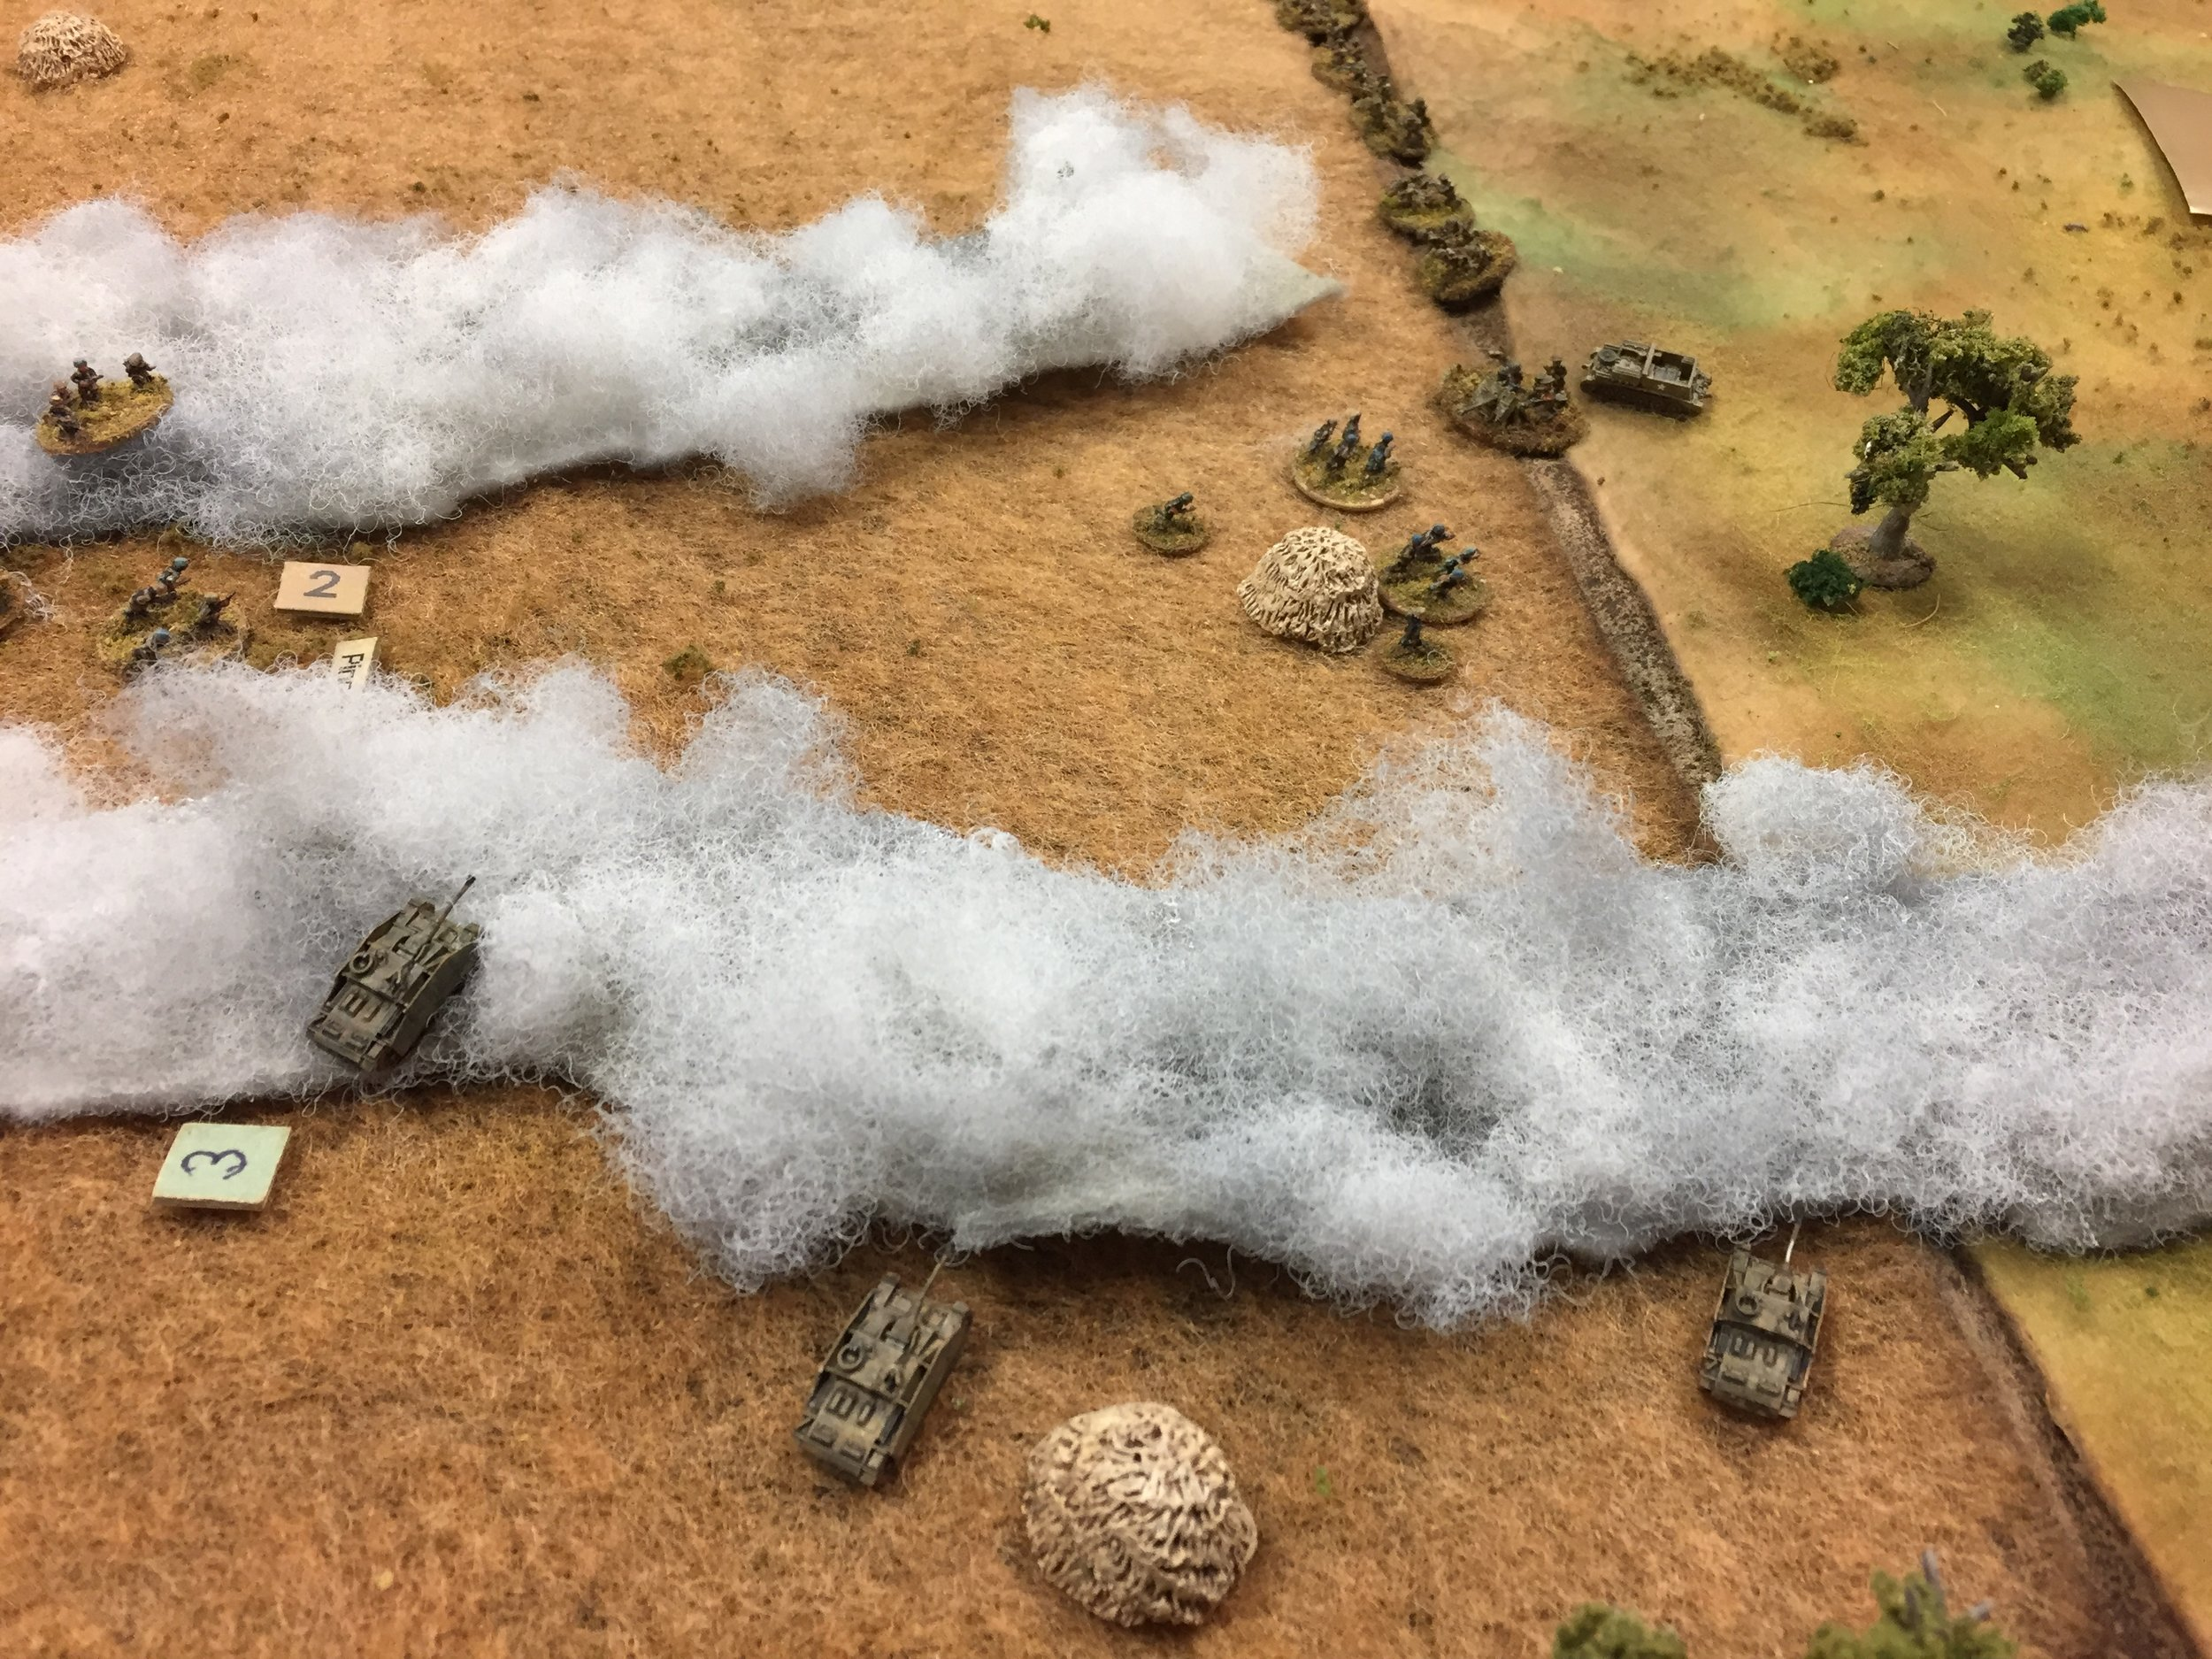 And the Luftwaffe Comes Out of the Fog into Close Combat